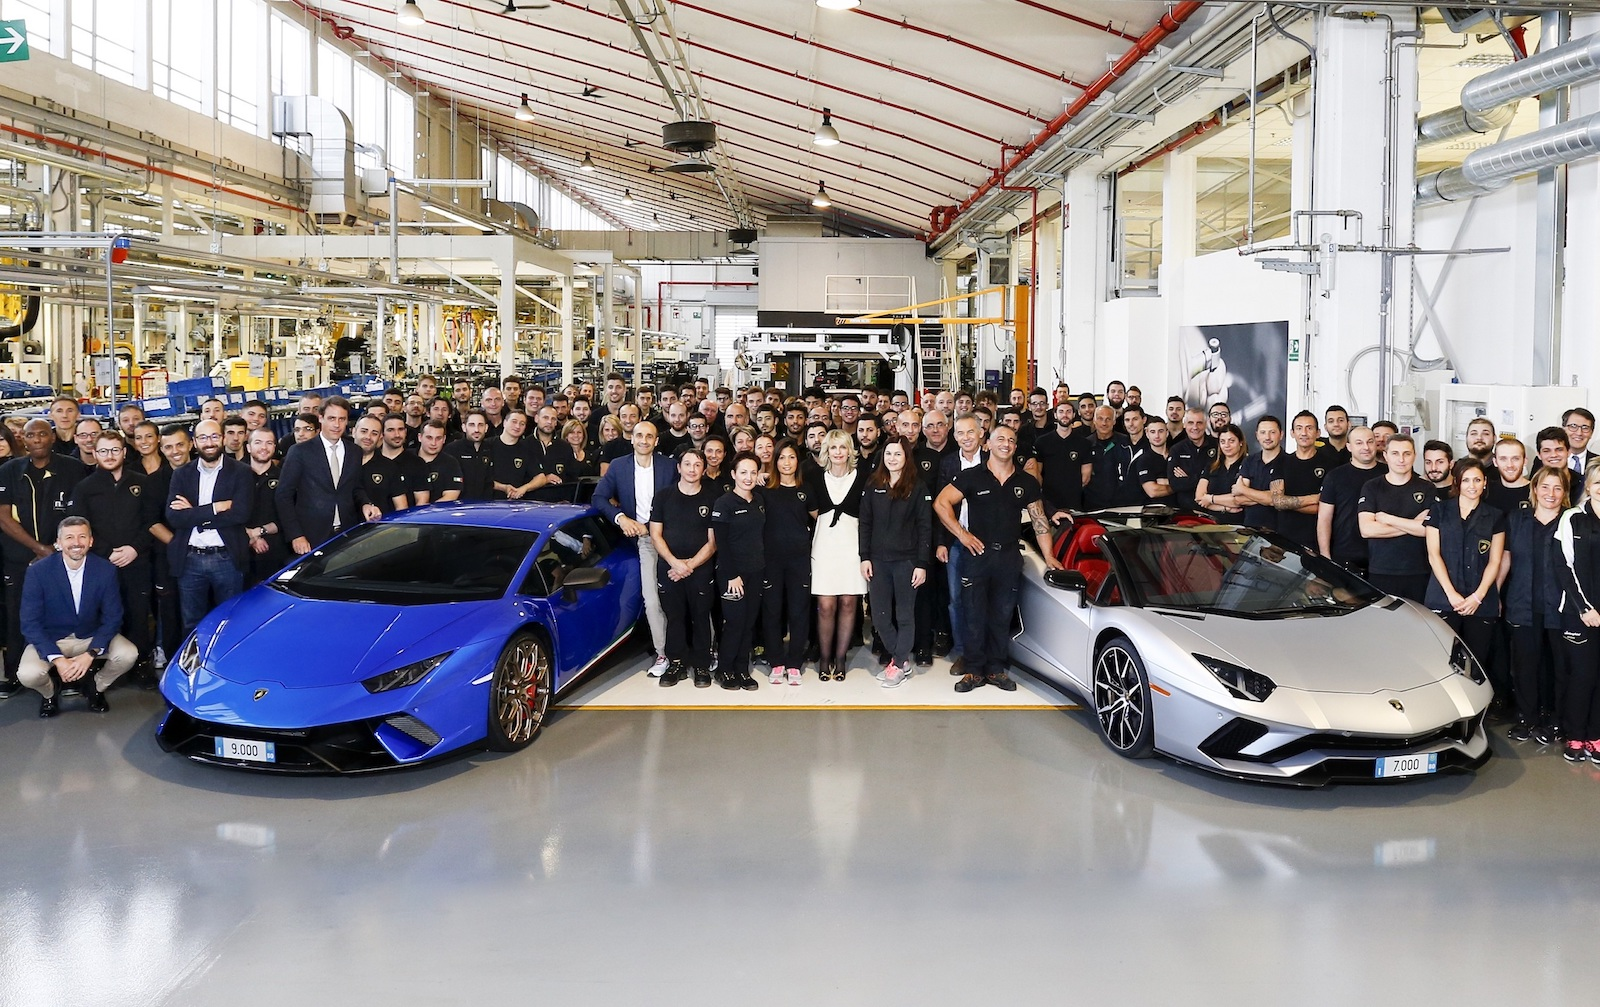 Lamborghini Aventador, Huracan hit production milestones